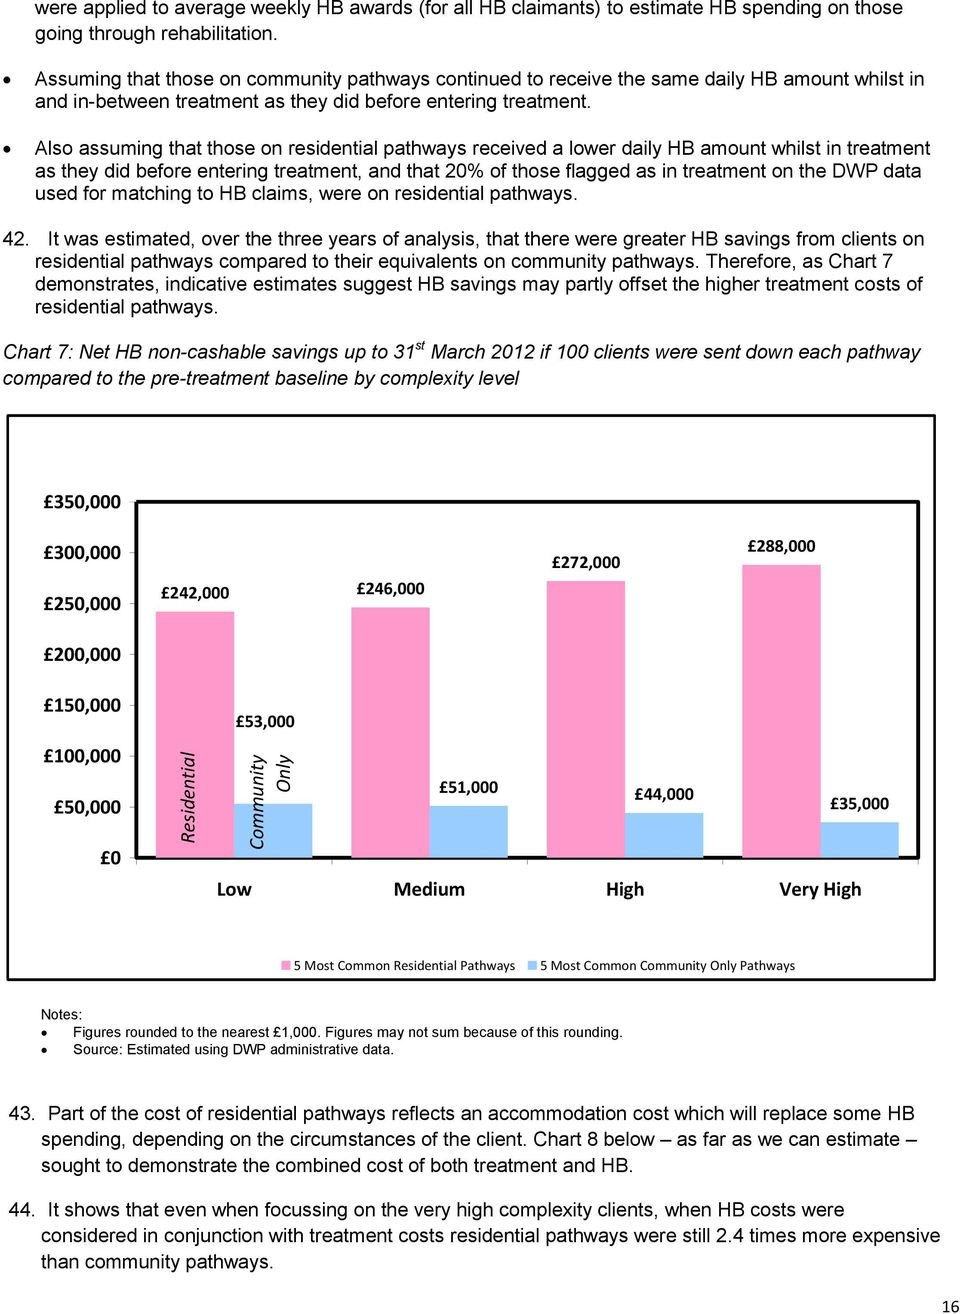 Also assuming that those on residential pathways received a lower daily HB amount whilst in treatment as they did before entering treatment, and that 20% of those flagged as in treatment on the DWP